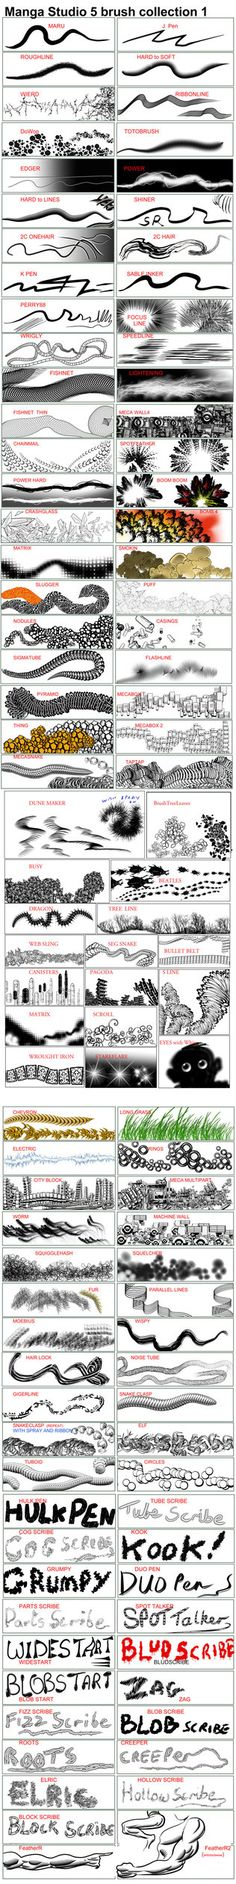 Manga Studio v5 Brushes and Actions - collection 1 by 888toto - http://888toto.deviantart.com/art/Manga-Studio-v5-Brushes-and-Actions-collection-1-398466313